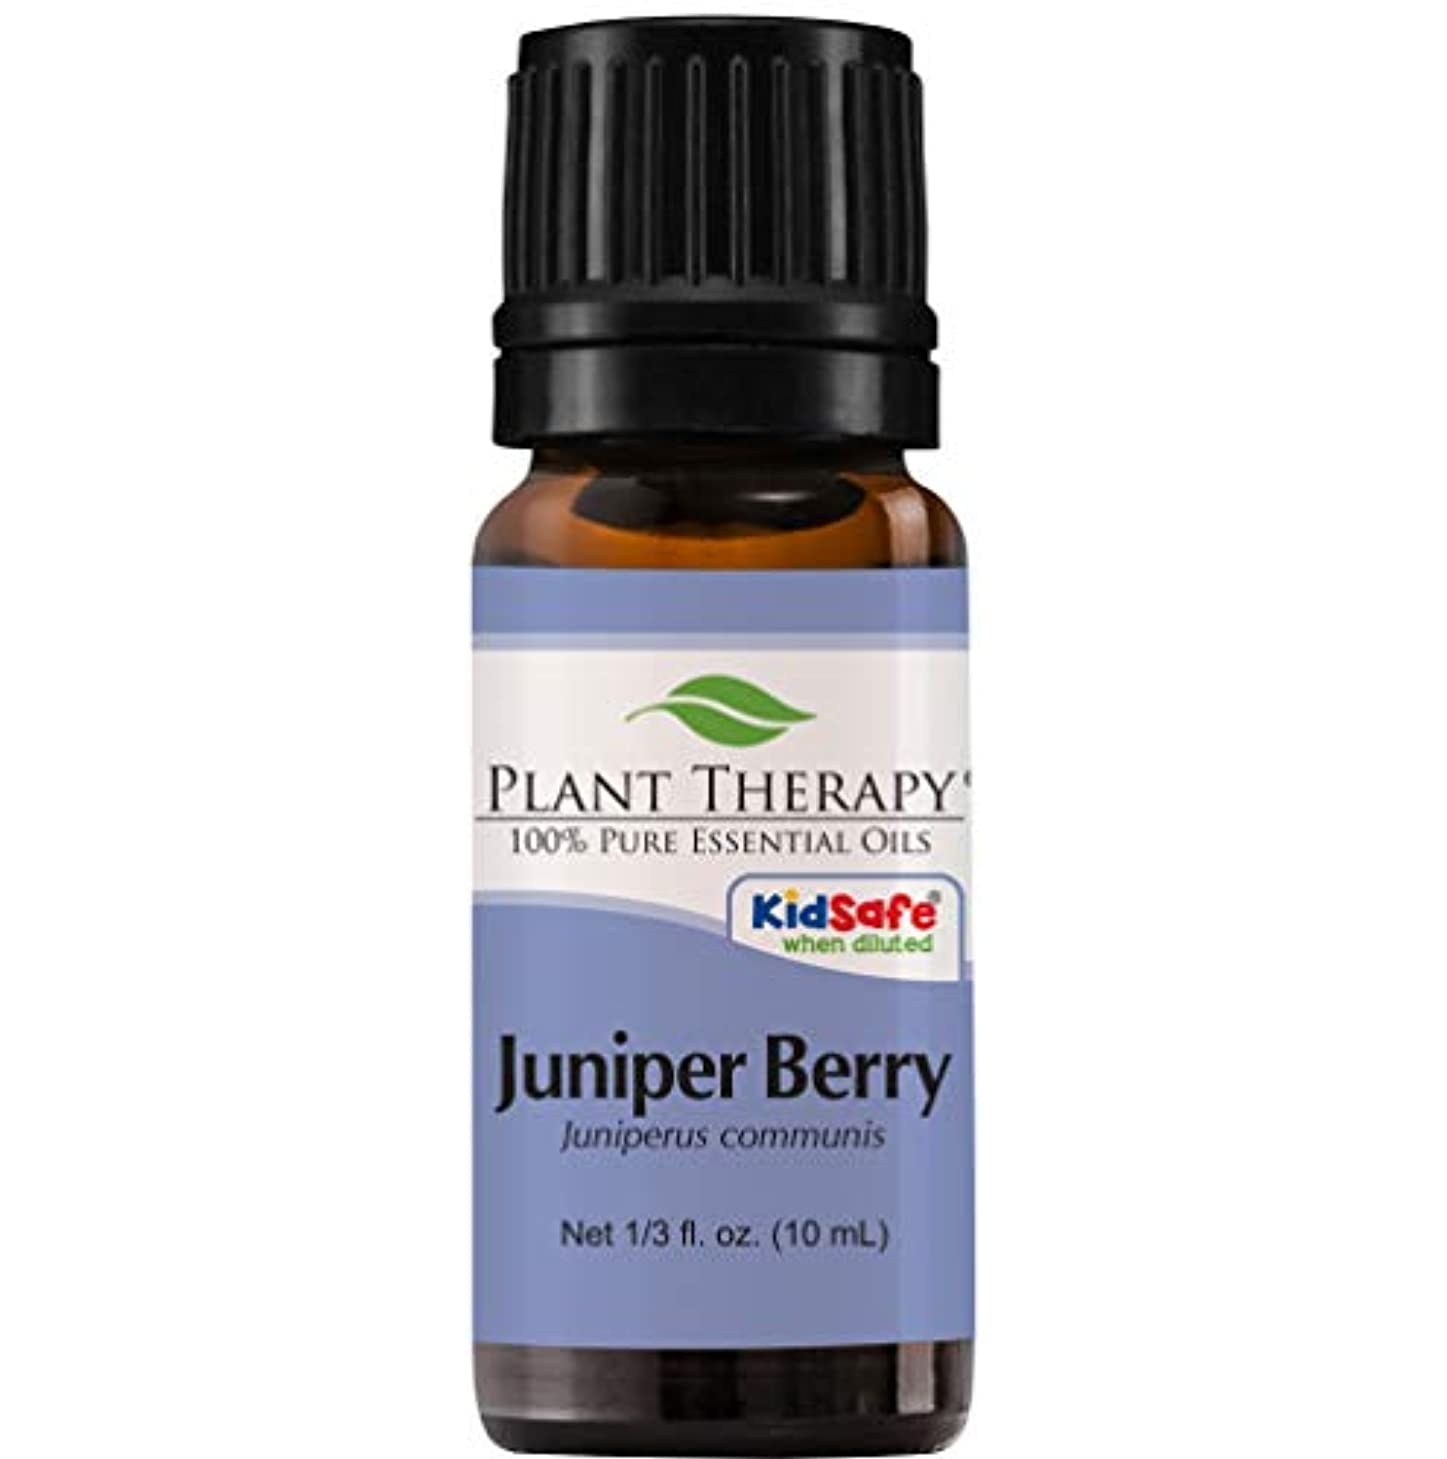 アート遅滞飢えたPlant Therapy Juniper Berry Essential Oil. 100% Pure, Undiluted, Therapeutic Grade. 10 ml (1/3 oz).